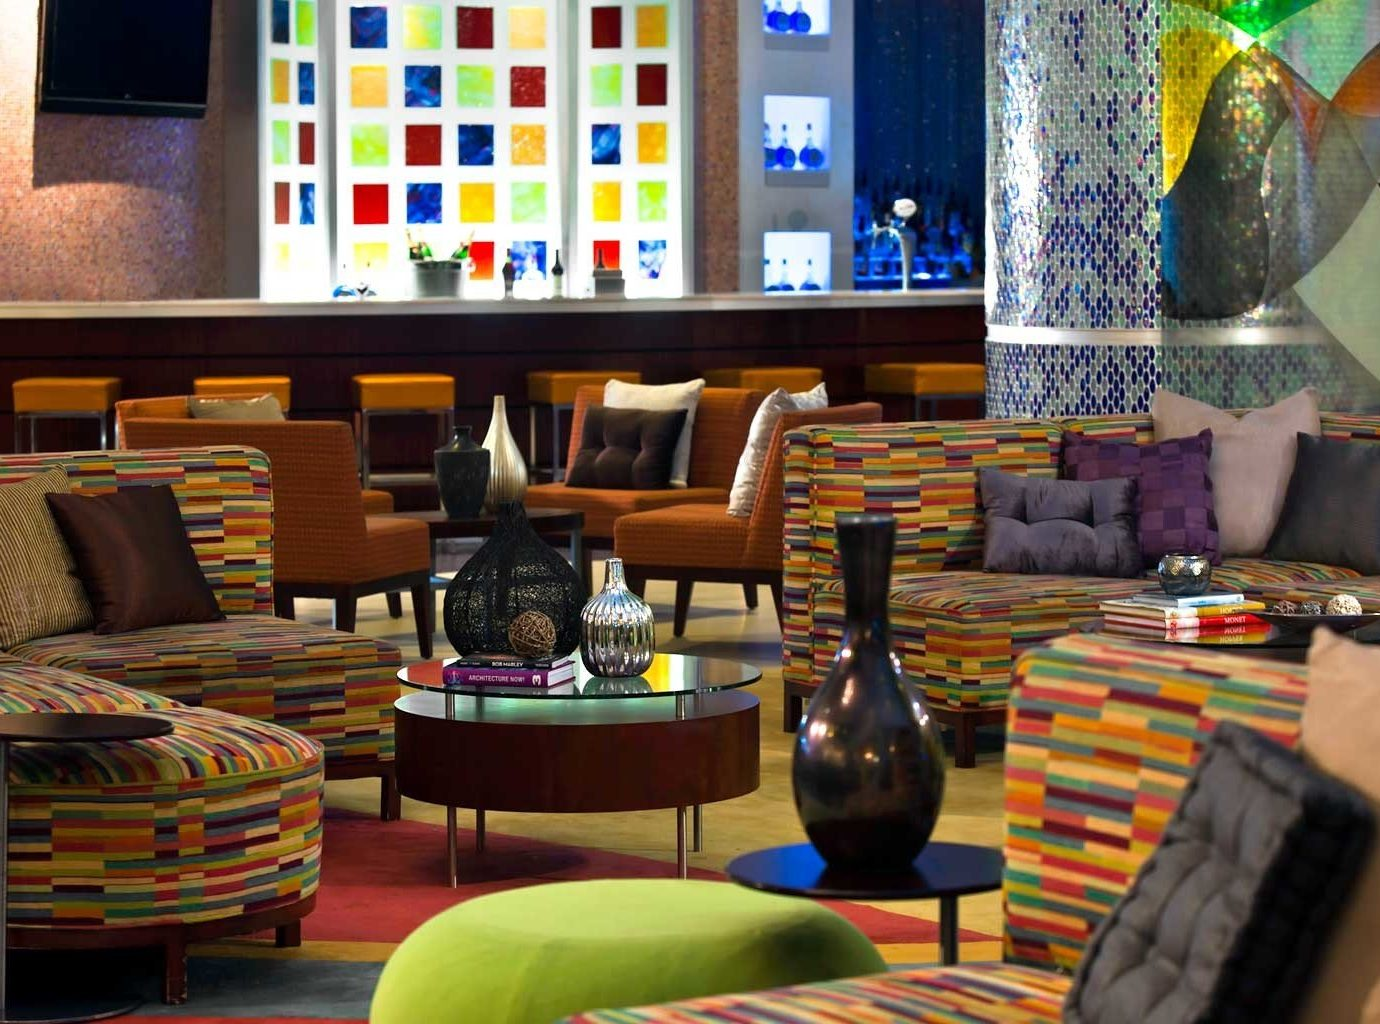 All-Inclusive Resorts Bar Budget caribbean Casino Drink Hotels Lounge Luxury Nightlife Resort color indoor living room room home interior design Lobby Design furniture colorful